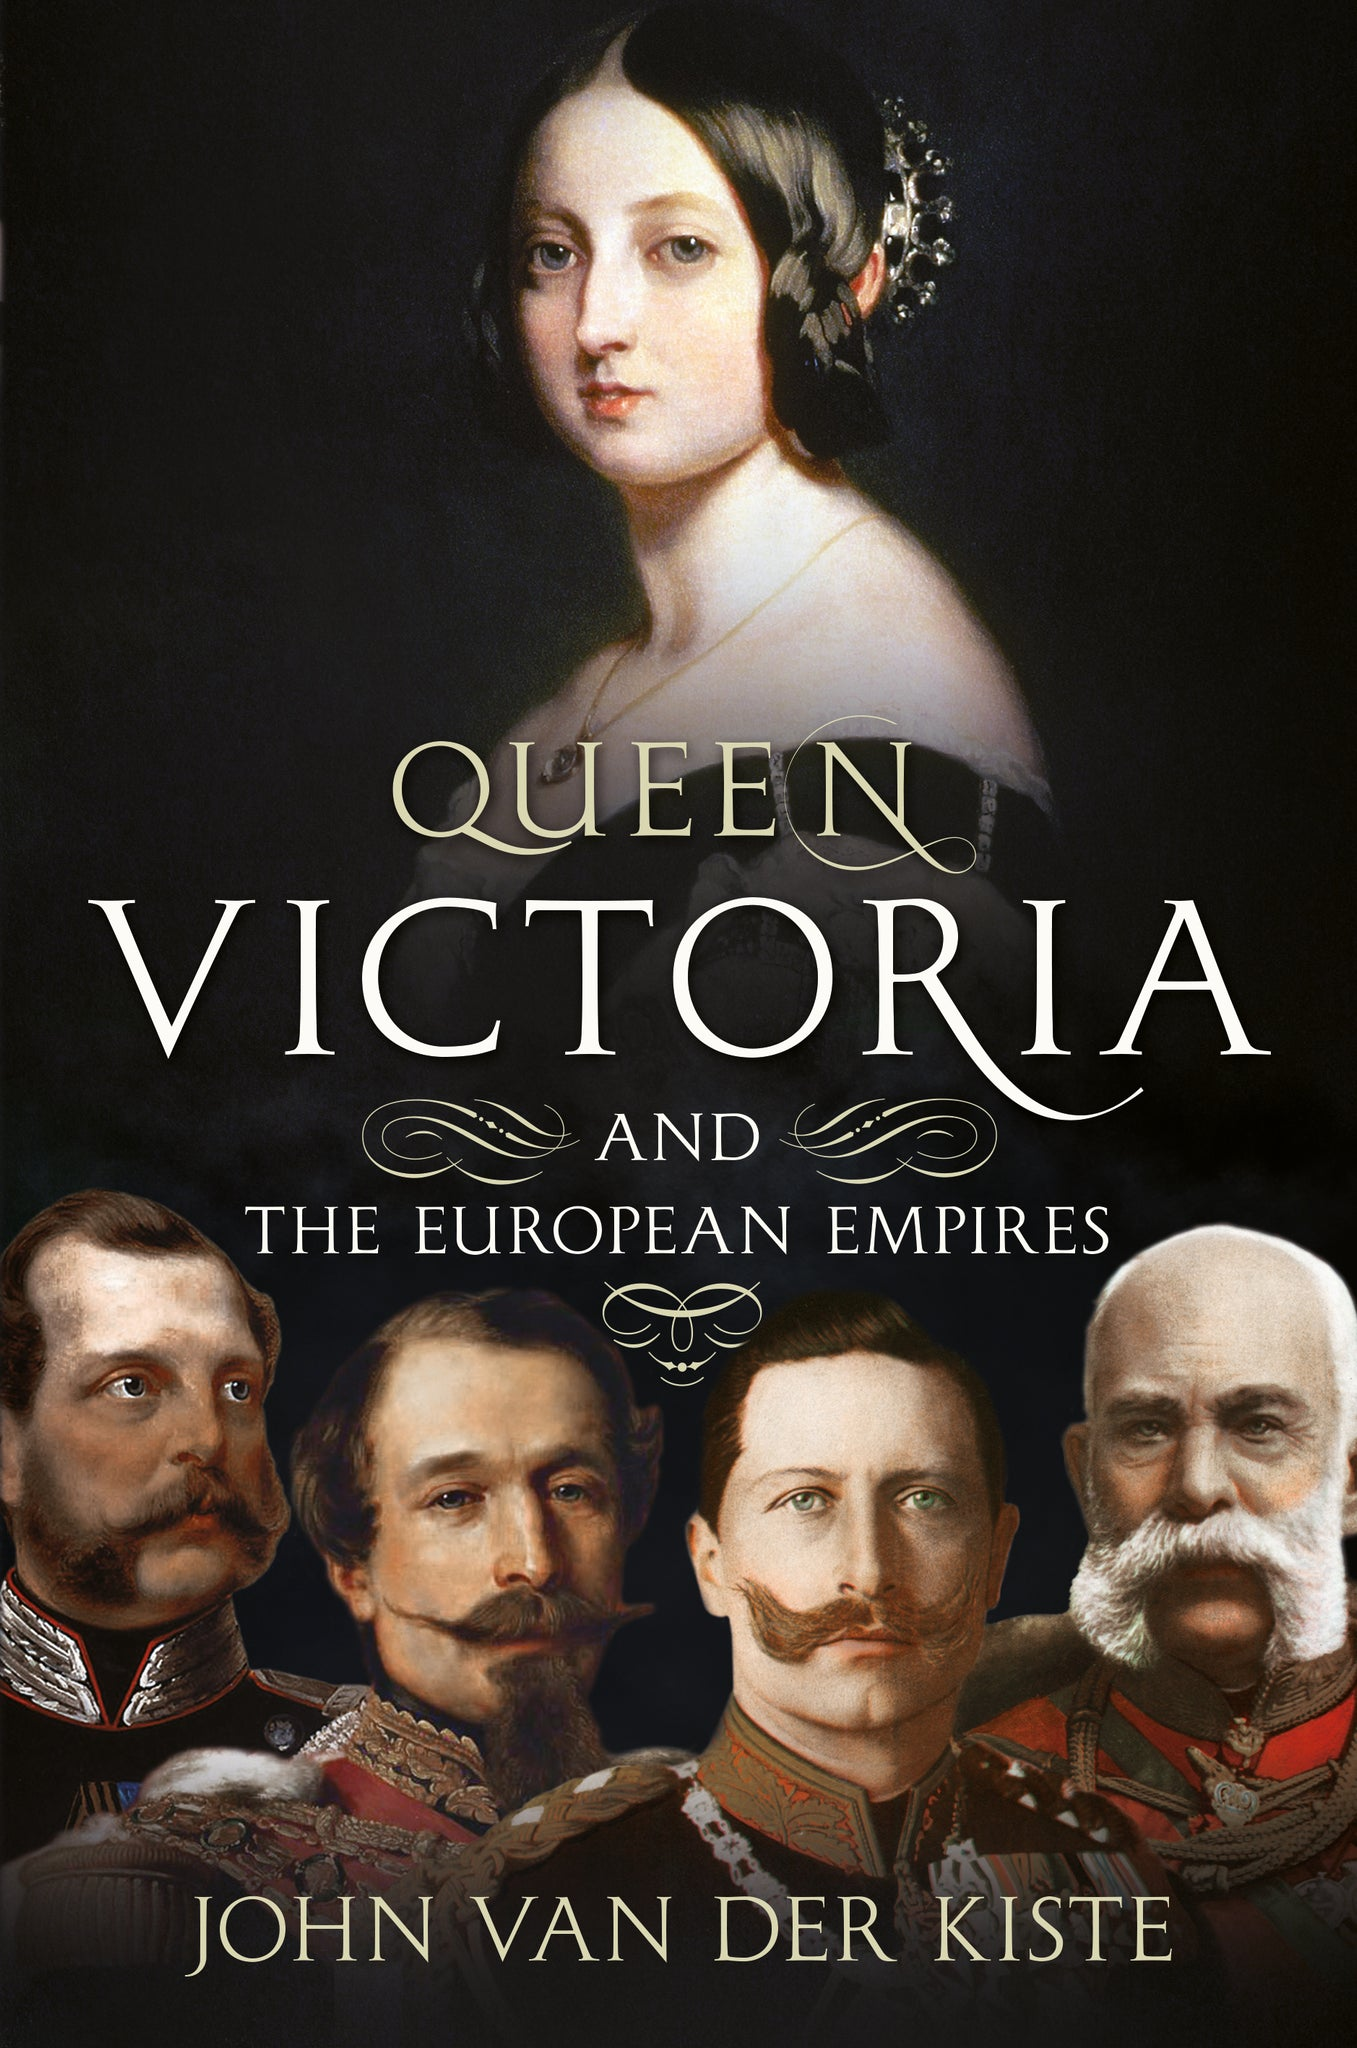 Queen Victoria and the European Empires - available now from Fonthill Media